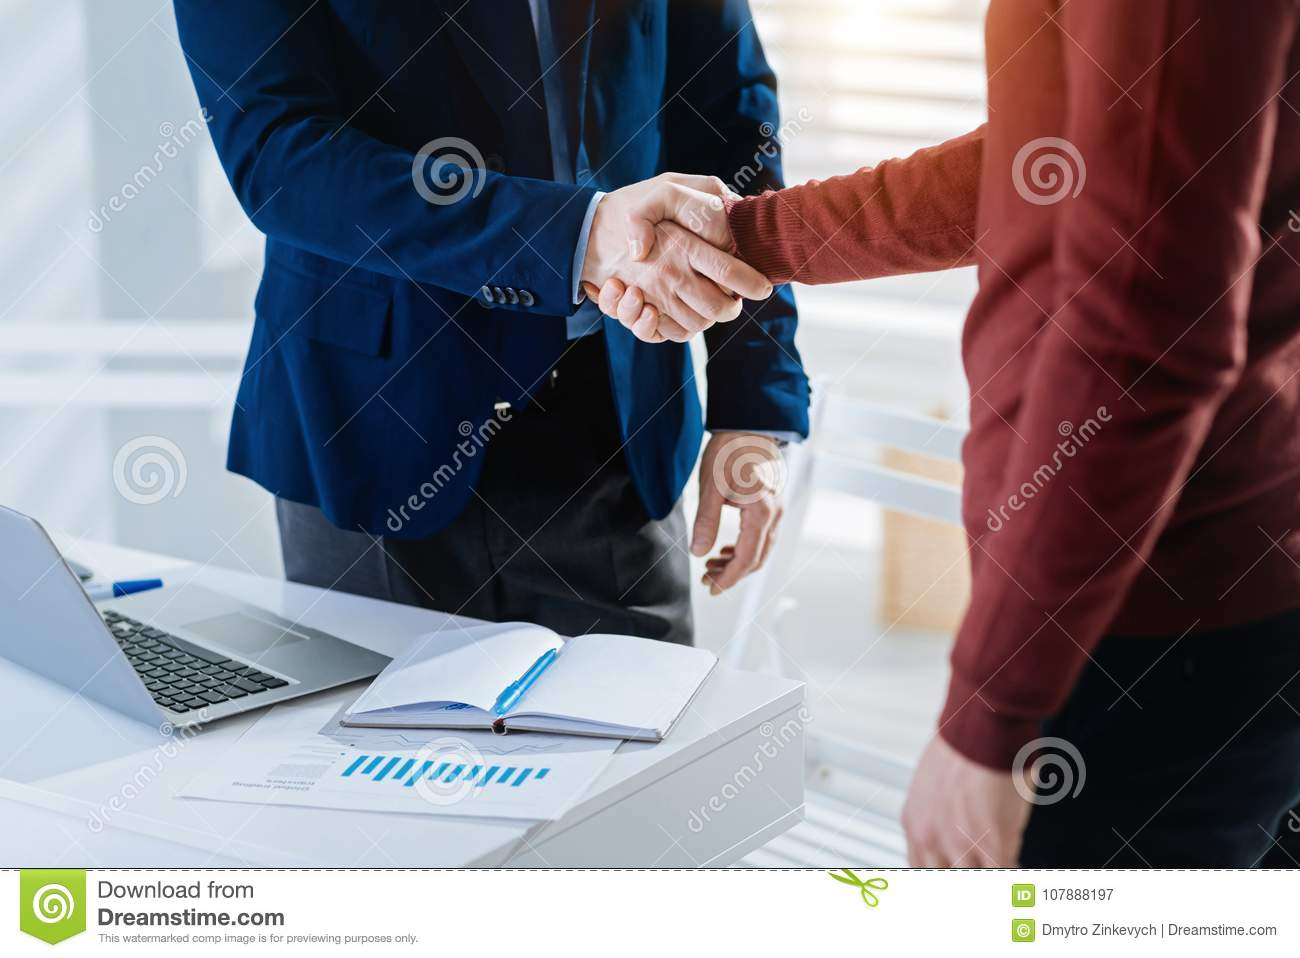 Strong Male Hands Conforming Deal Stock Image - Image of